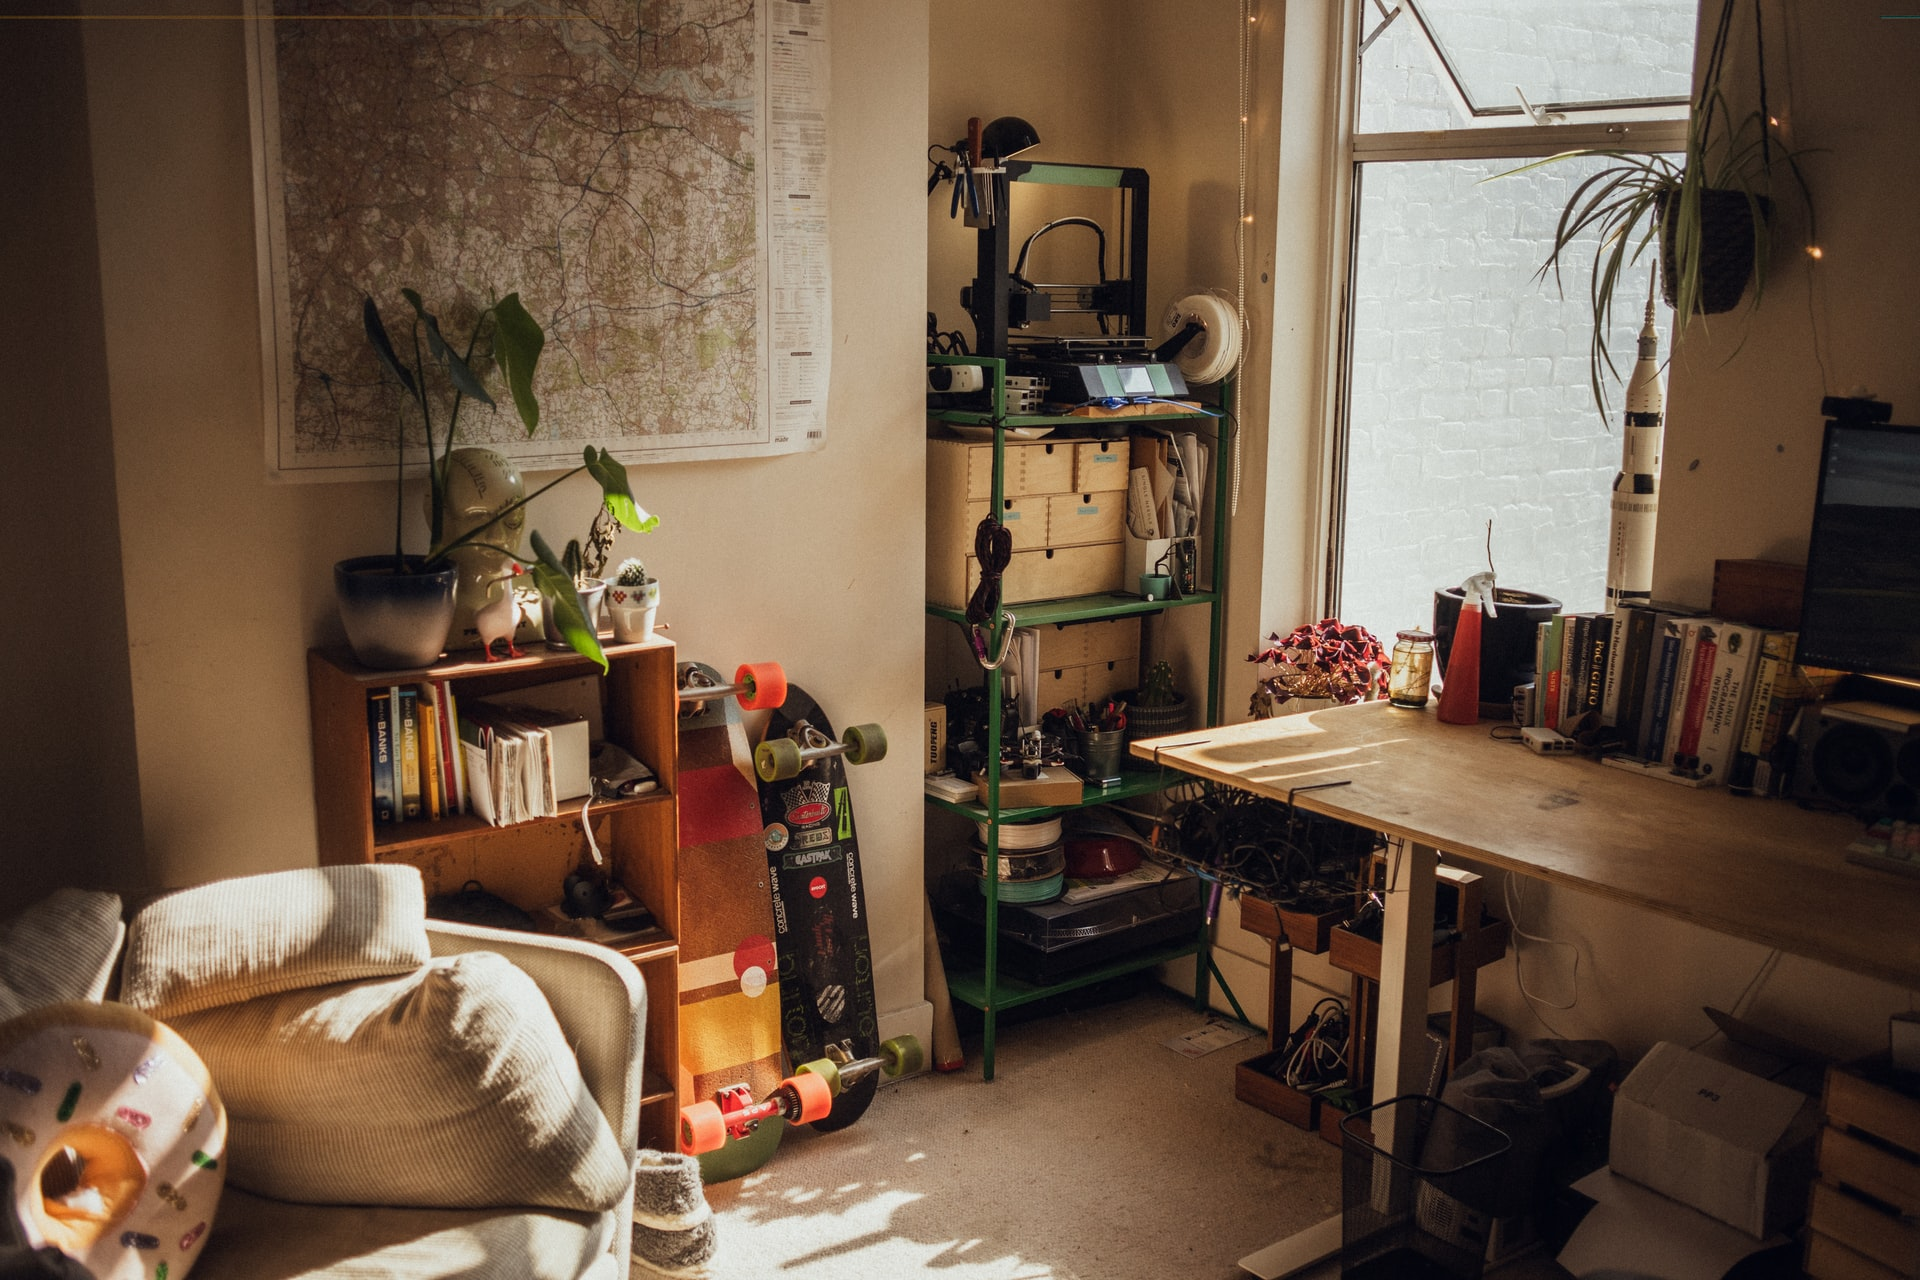 6 Useful Ways To Deal With The Extra Junk In Your House